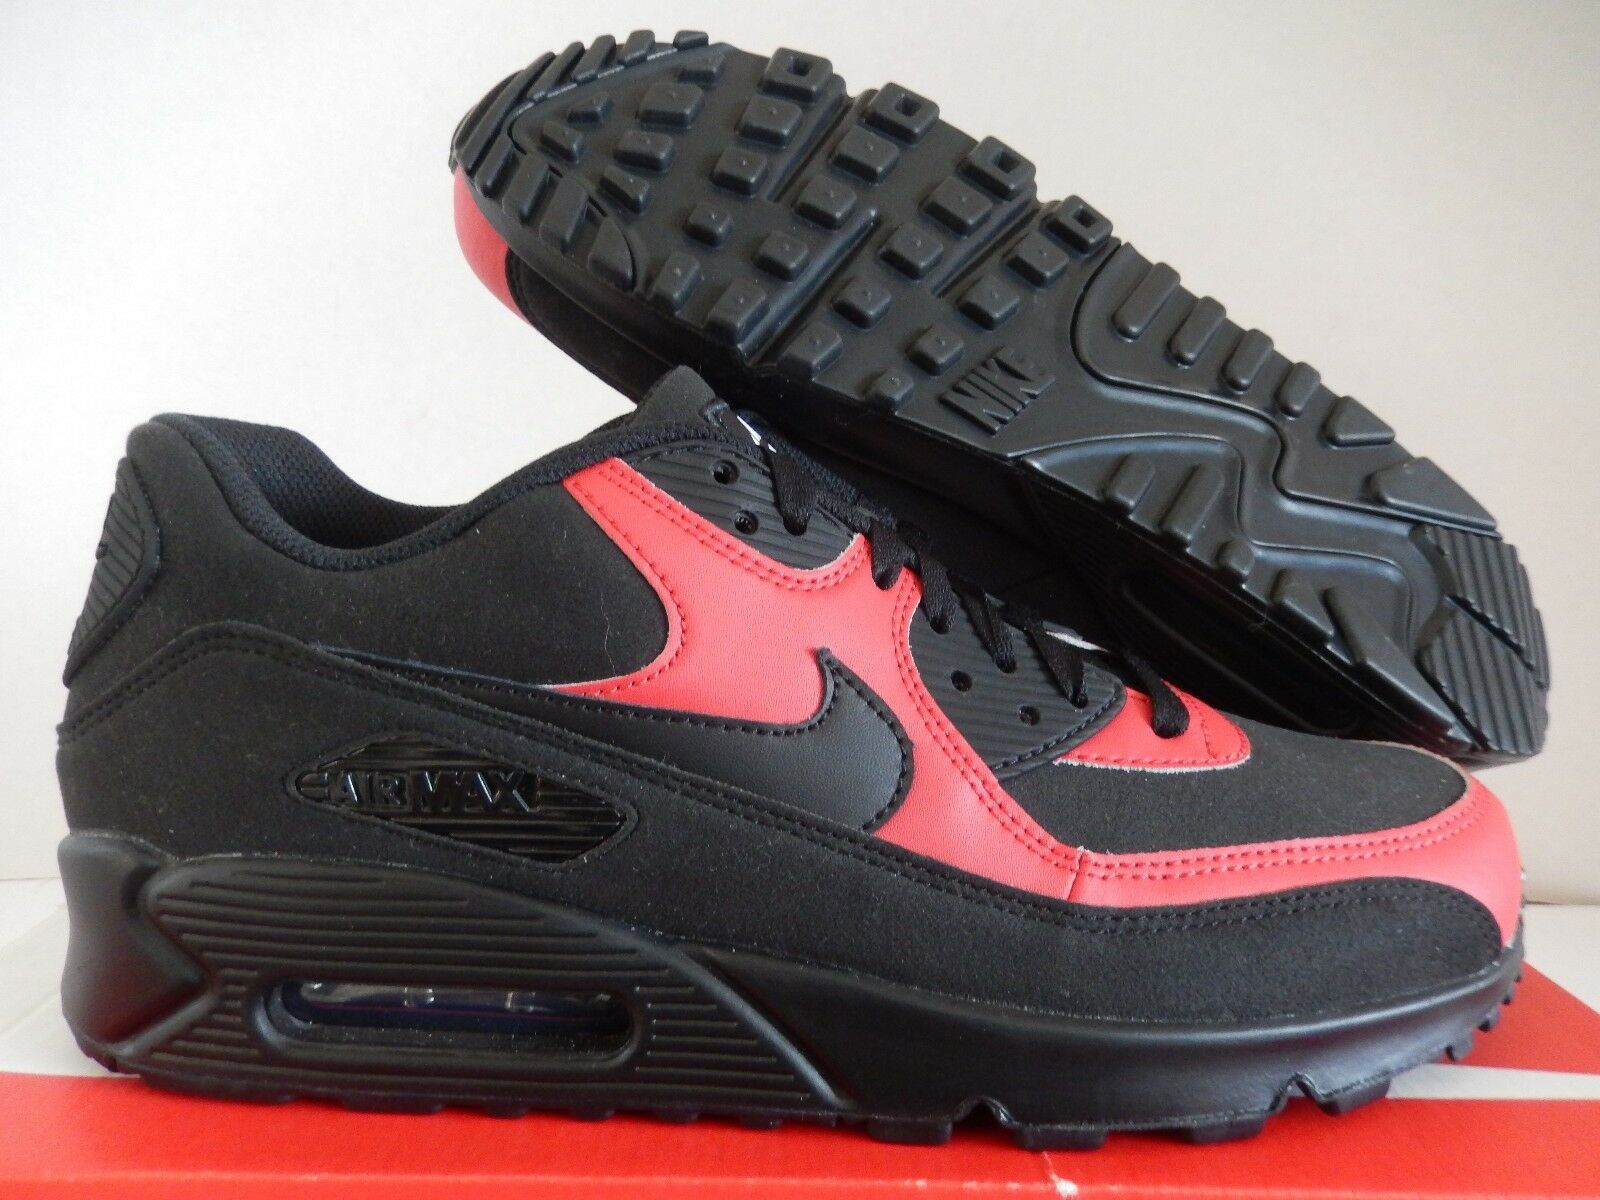 NIKE AIR MAX 90 ID BLACK-RED SZ 11 WOMENS-MENS SZ 9.5 [931896-993]